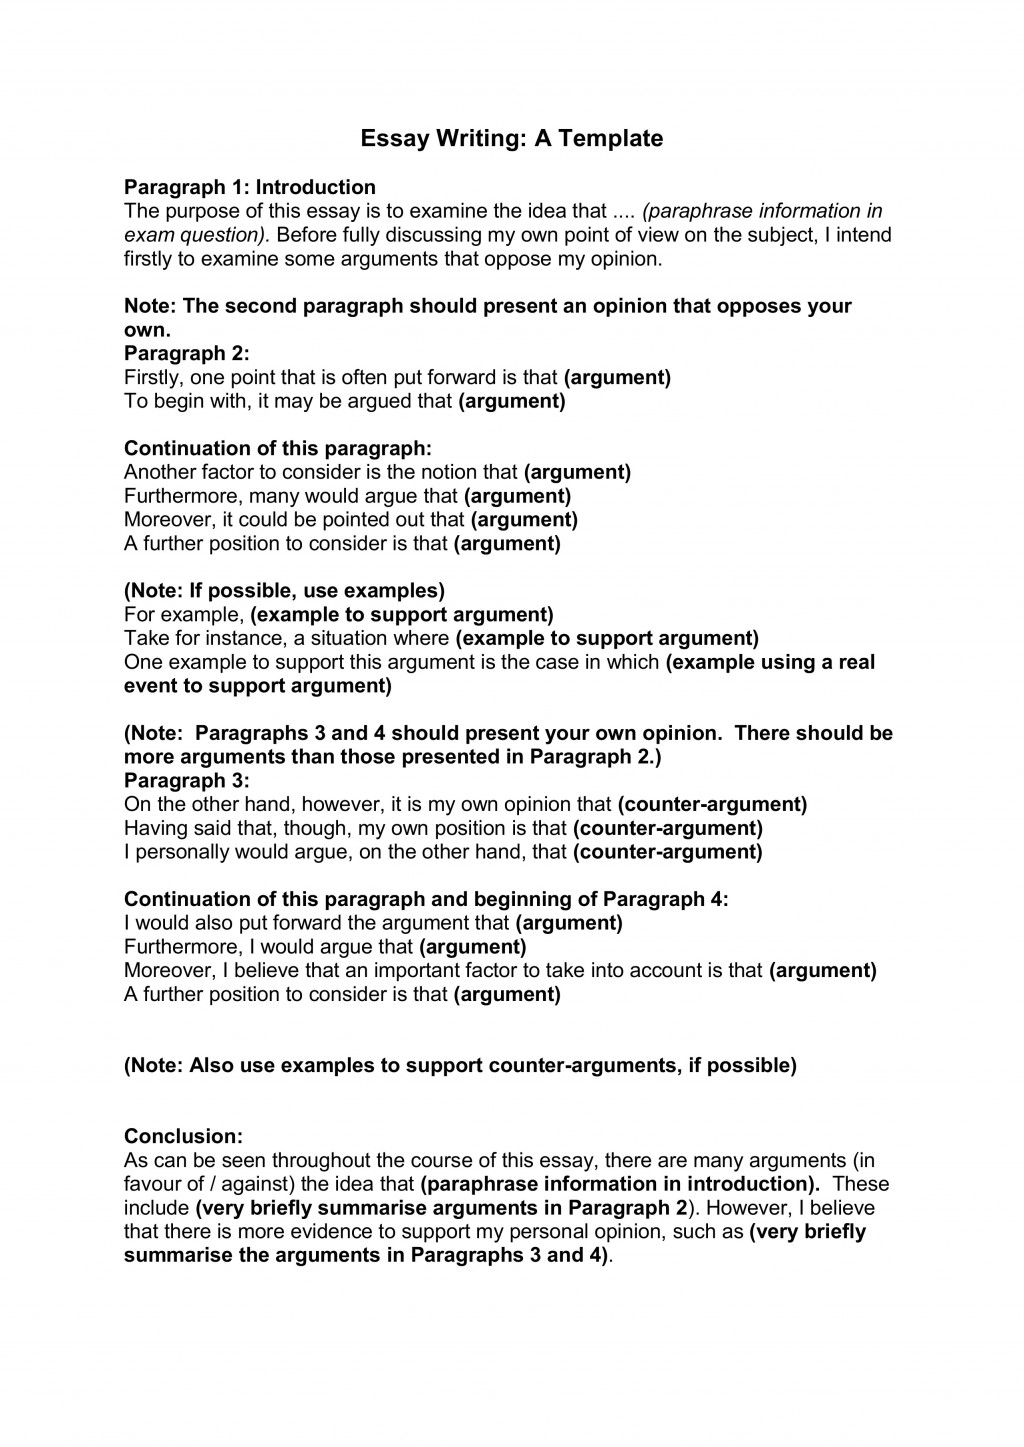 021 Order Of Research Paper Essay Writing Template For Part Breathtaking Reviews Making Examples Headings In A Large